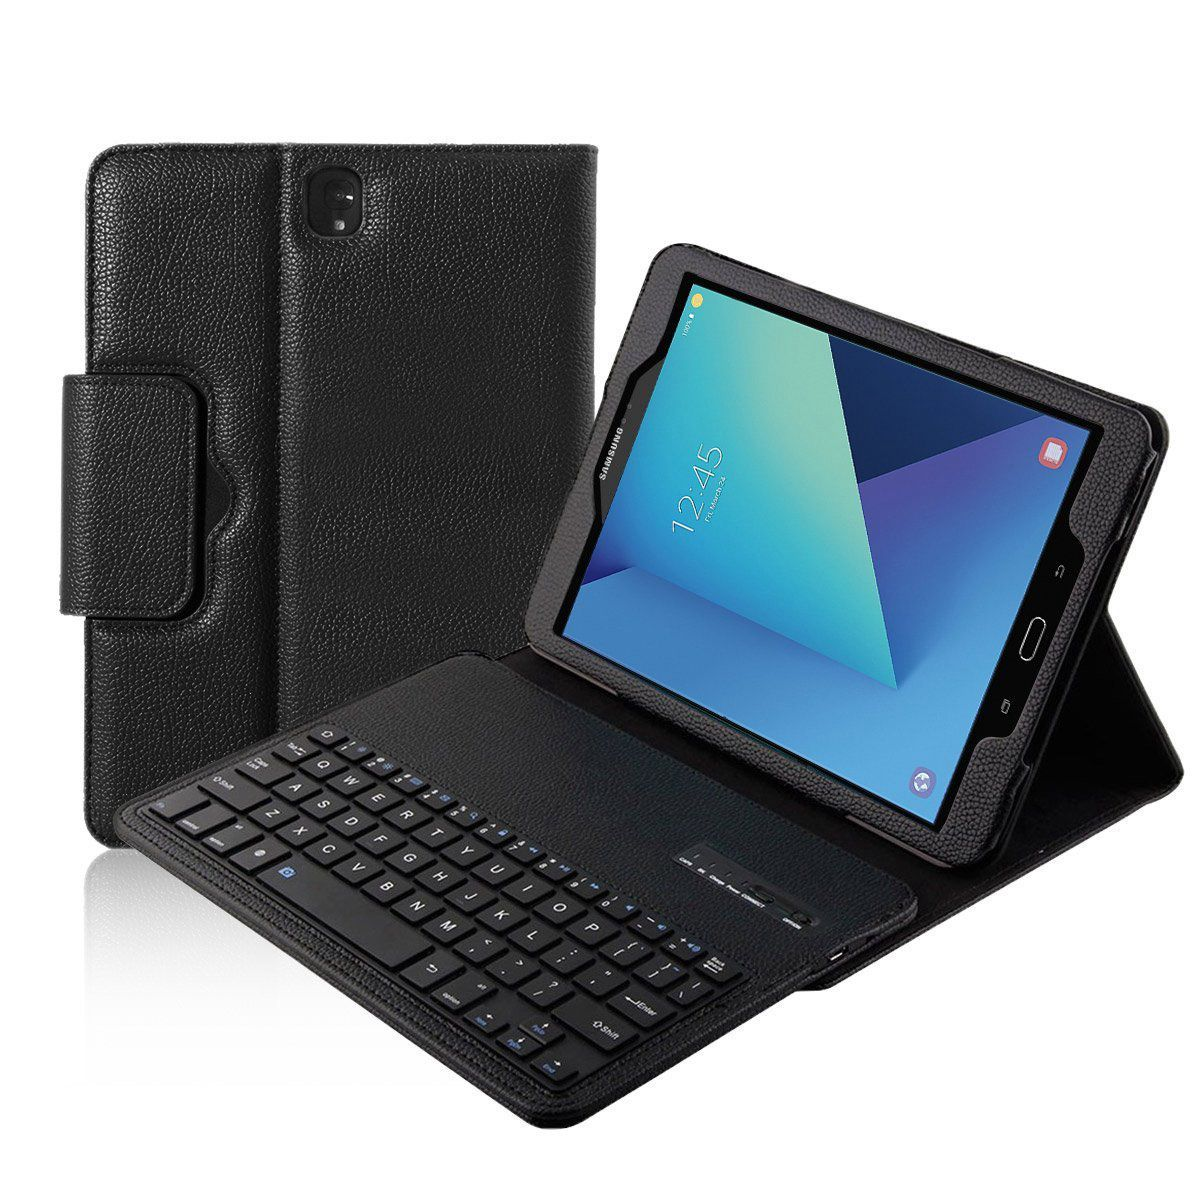 Smart Detachable Wireless Bluetooth Keyboard Cover for Samsung Galaxy Tab S3 9.7 inch T820 T825Tablet new detachable official removable original metal keyboard station stand case cover for samsung ativ smart pc 700t 700t1c xe700t